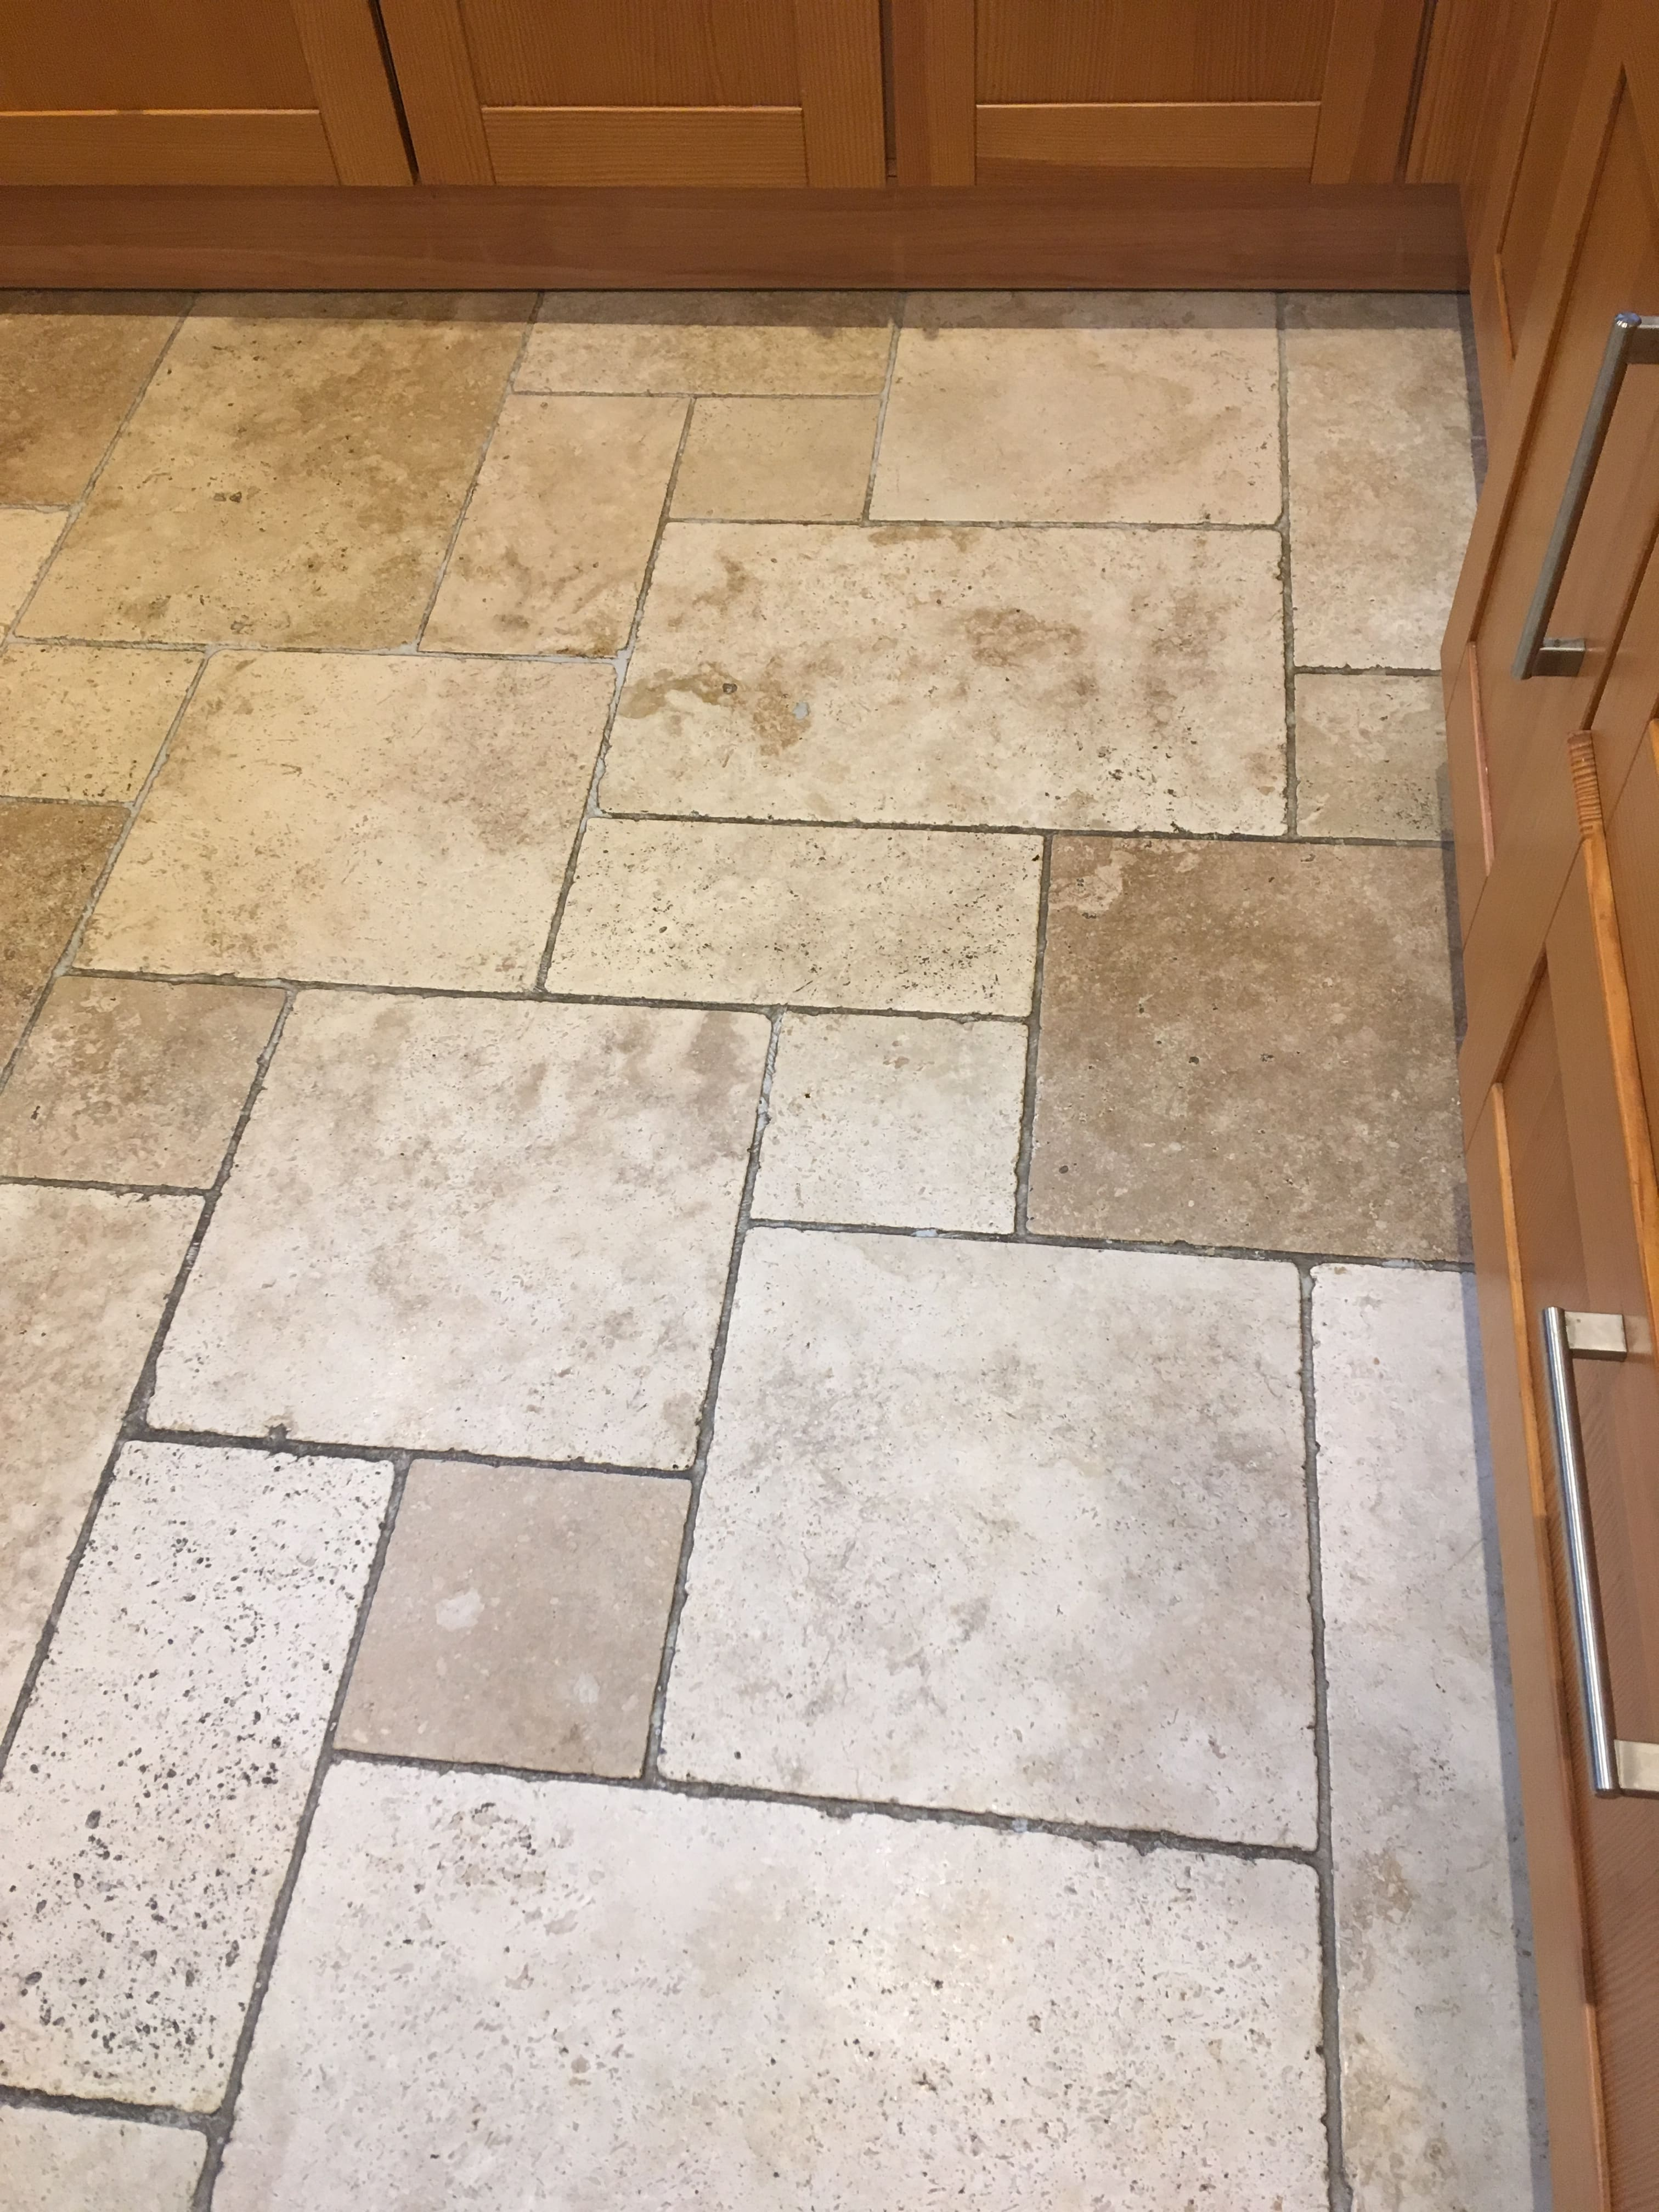 Travertine Tiled Floor Before Cleaning Sunbury-on-Thames